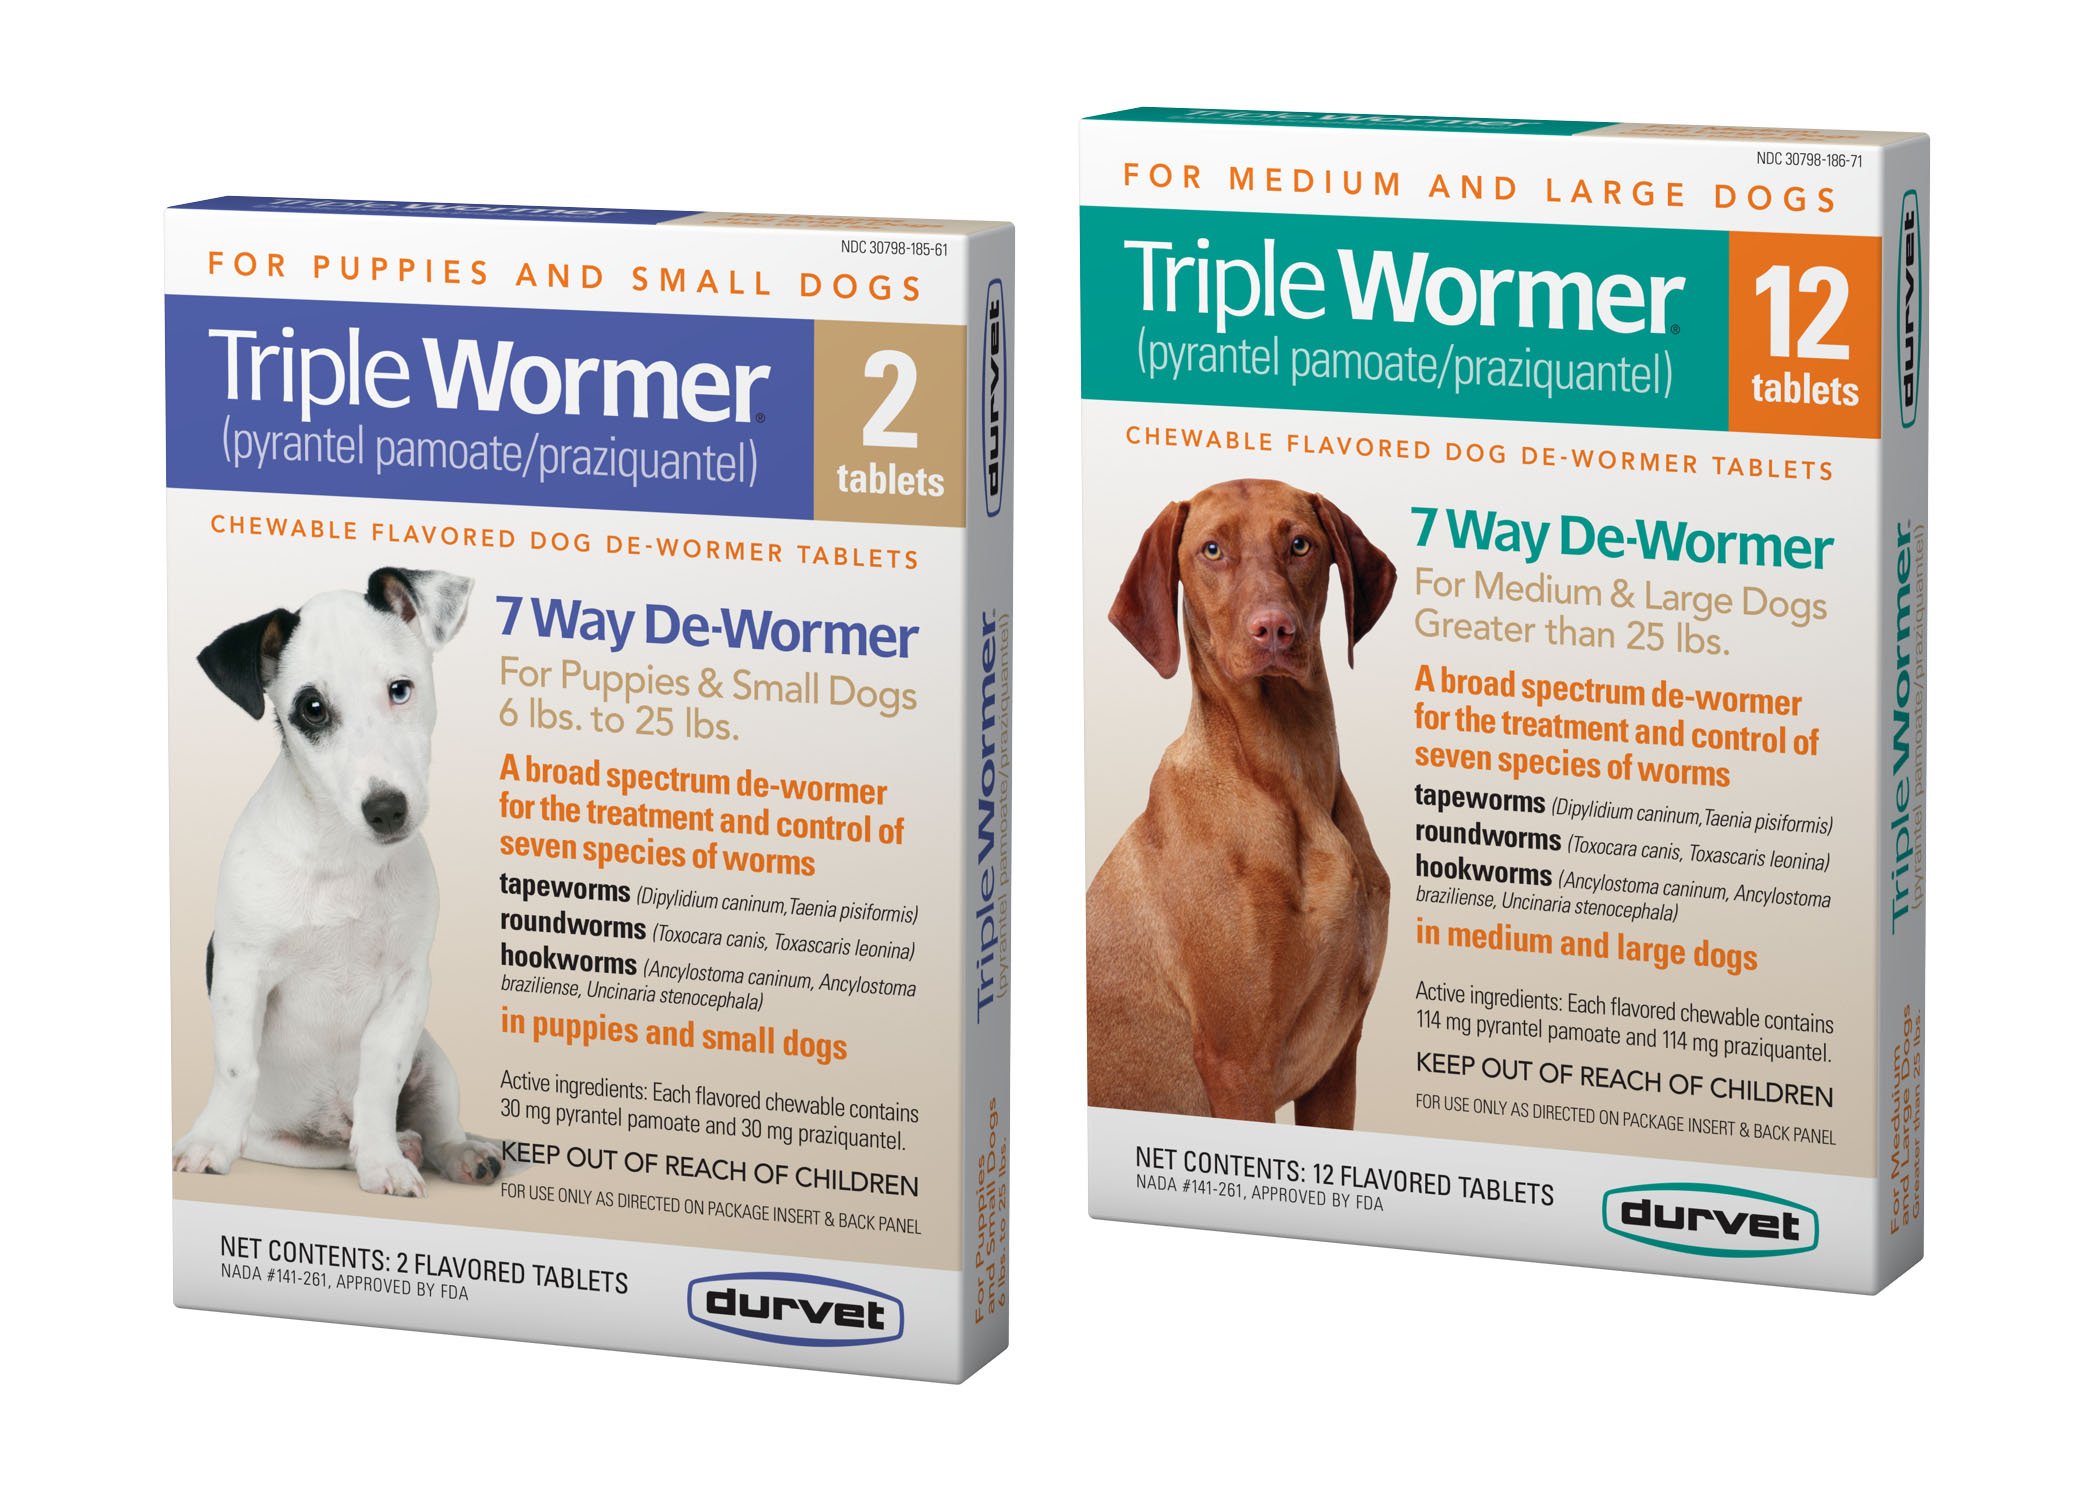 Triple Wormer for Small Dogs (6-25 lbs), 12 count